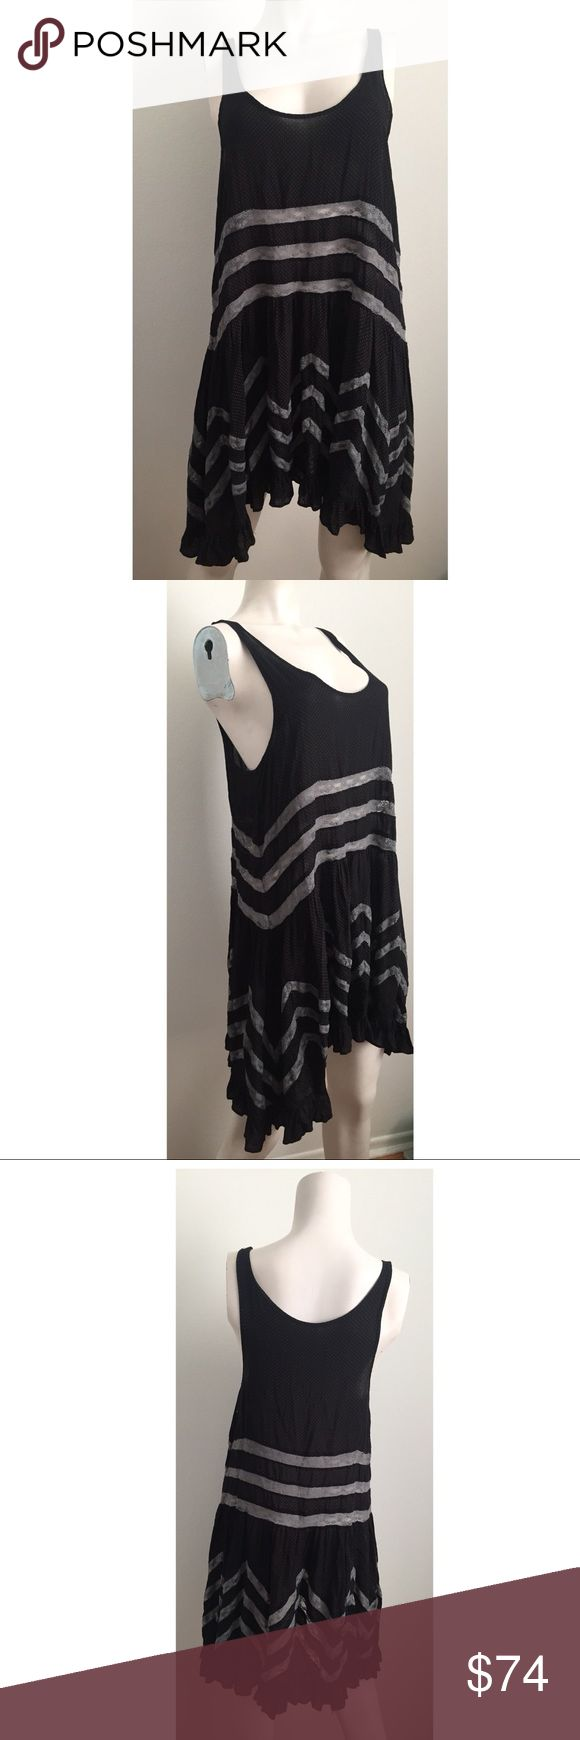 Intimately Free by Free People Asymmetrical Dress Cute and simple dress by Intimately Free by Free People. Can be worn as a short dress or as a long top with leggings. Gray lace insets on the bottom portion of the top. Black polka dot fabric. Free People Dresses